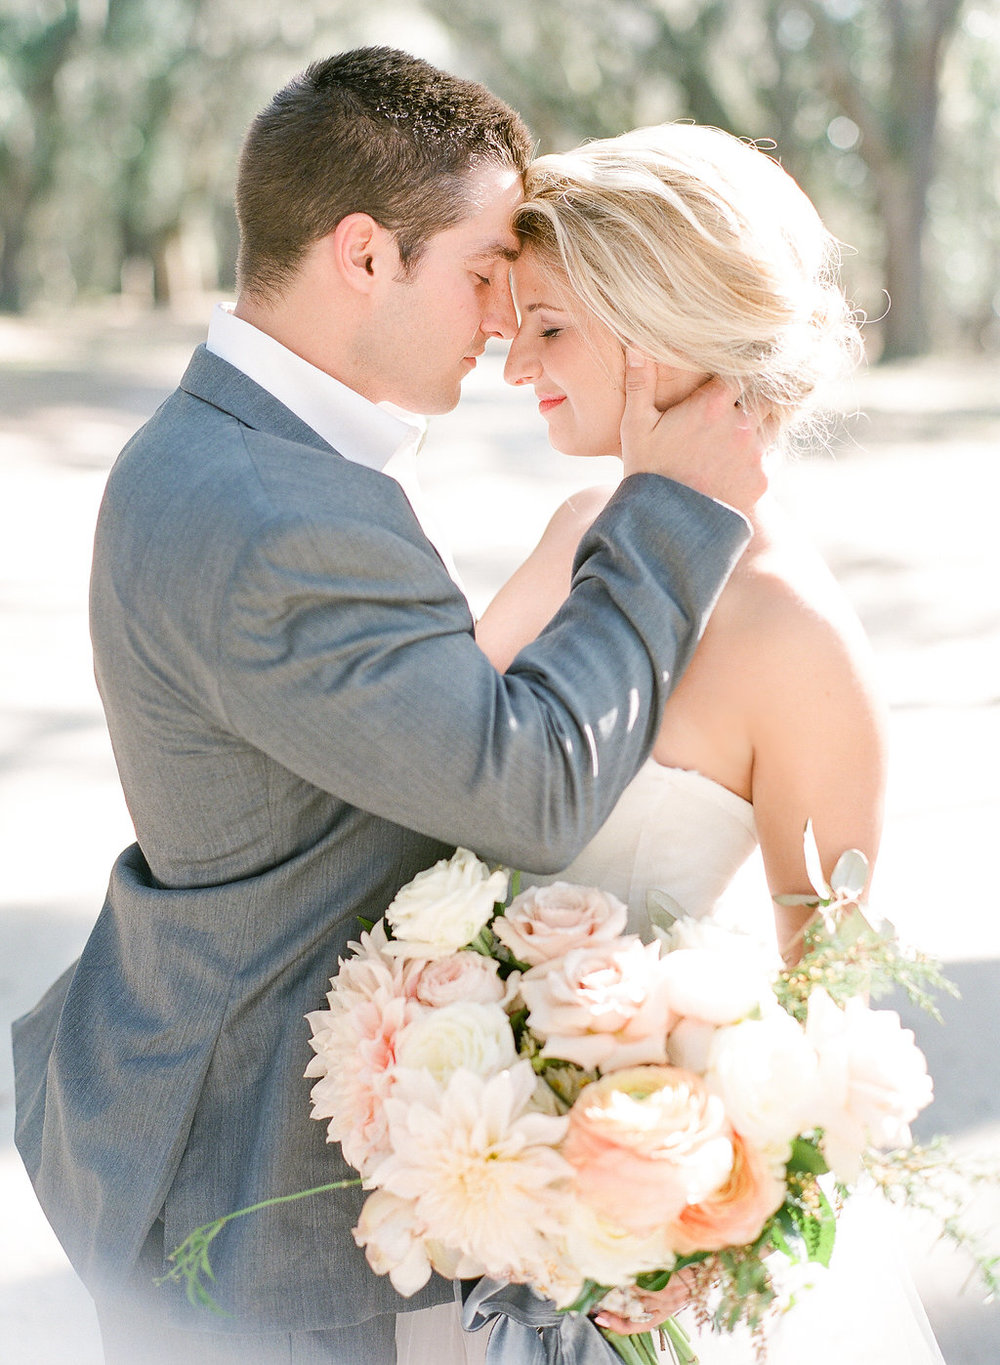 the-happy-bloom-wormsloe-wedding-savannah-wedding-ivory-and-beau-bridal-boutique-savannah-wedding-dresses-savannah-bridal-boutique-georgia-bridal-boutique-design-studio-south-sunset-wedding-blush-by-hayley-paige-candi-1550-blush-wedding-dress-2.jpg